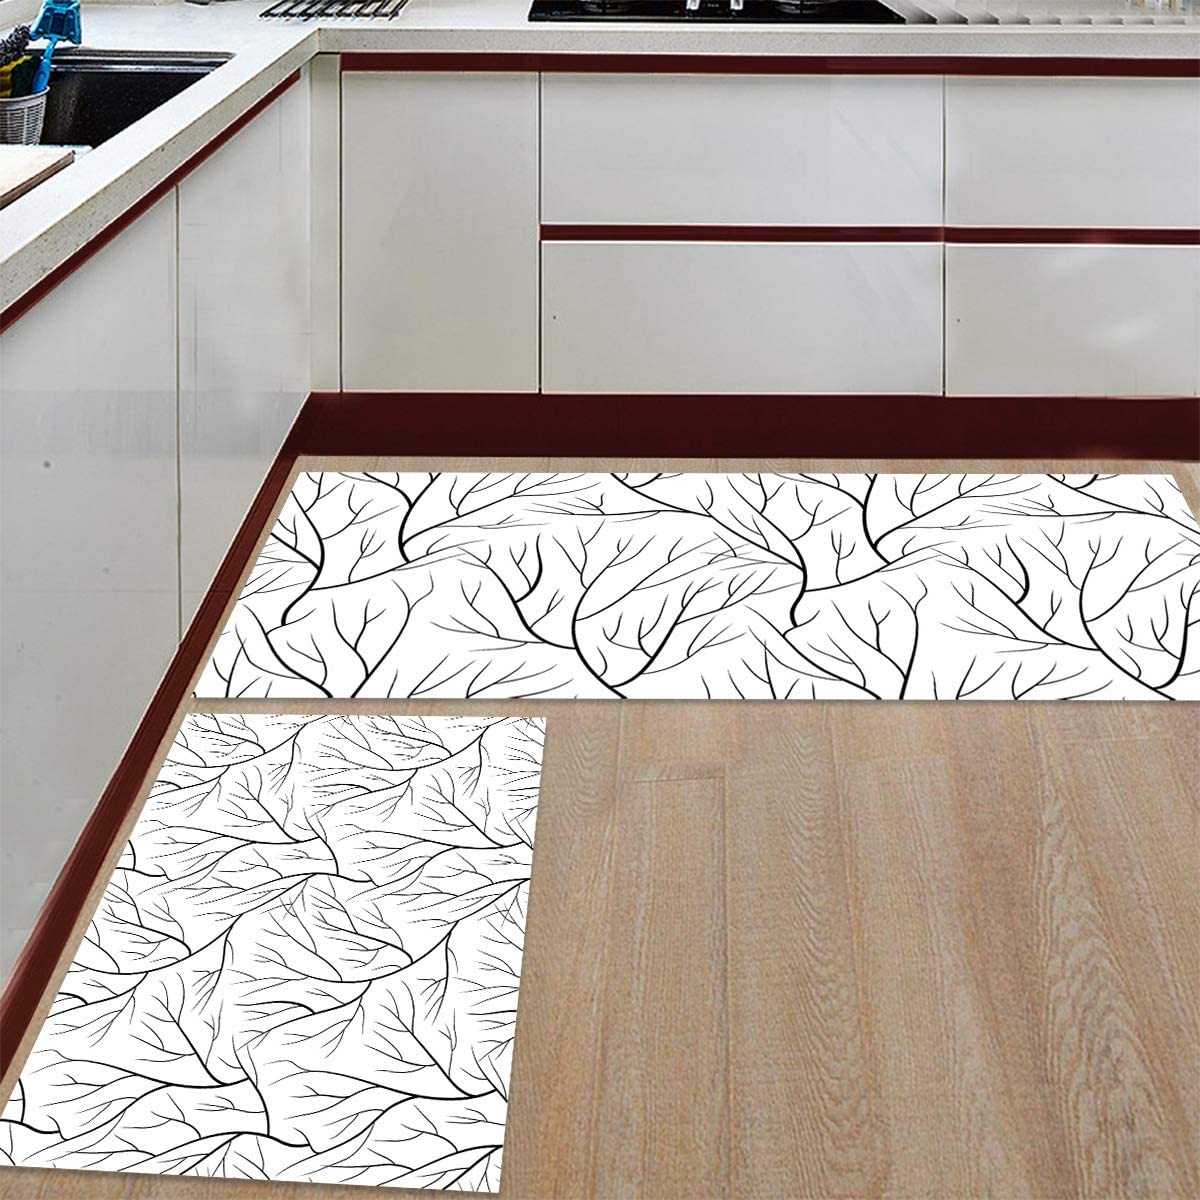 Advancey 2 Pieces In a popularity Anti-Slip Kitchen Bran Mats Trees price Forest Black